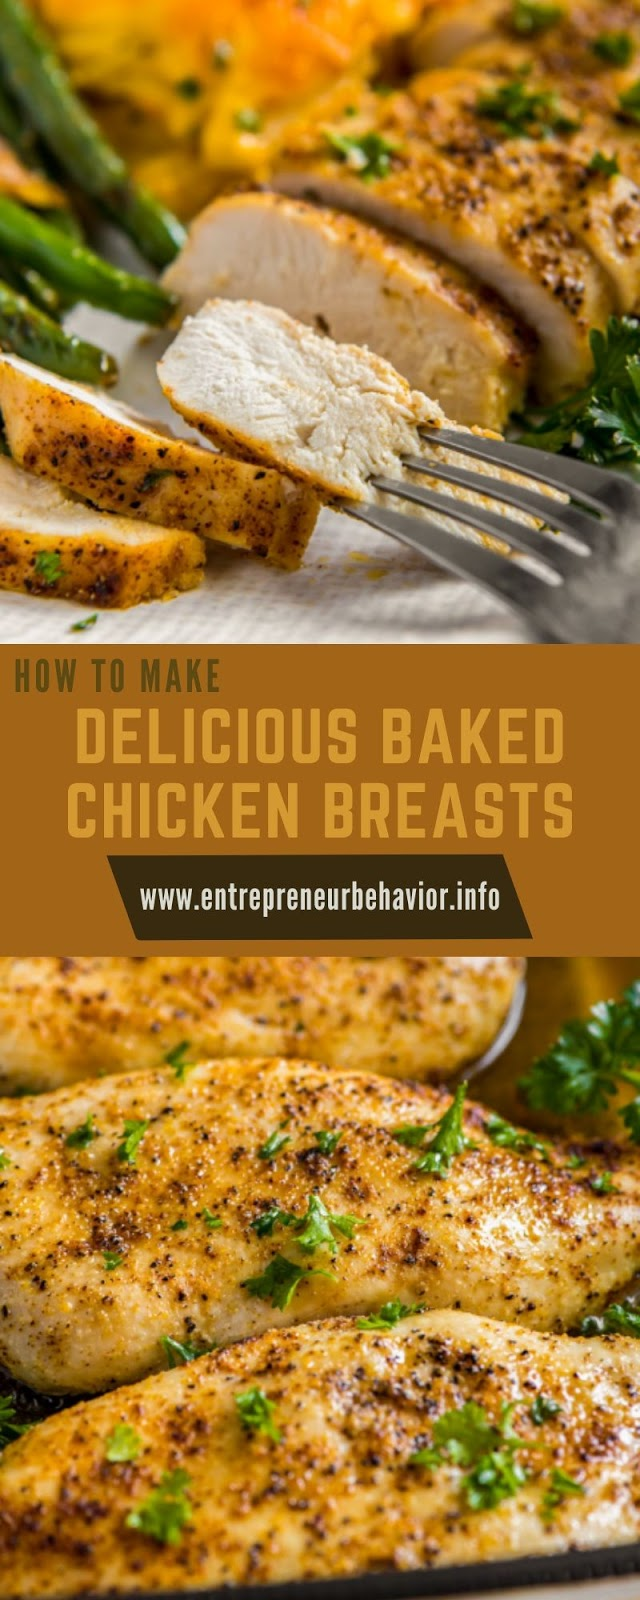 HOW TO MAKE DELICIOUS BAKED CHICKEN BREASTS